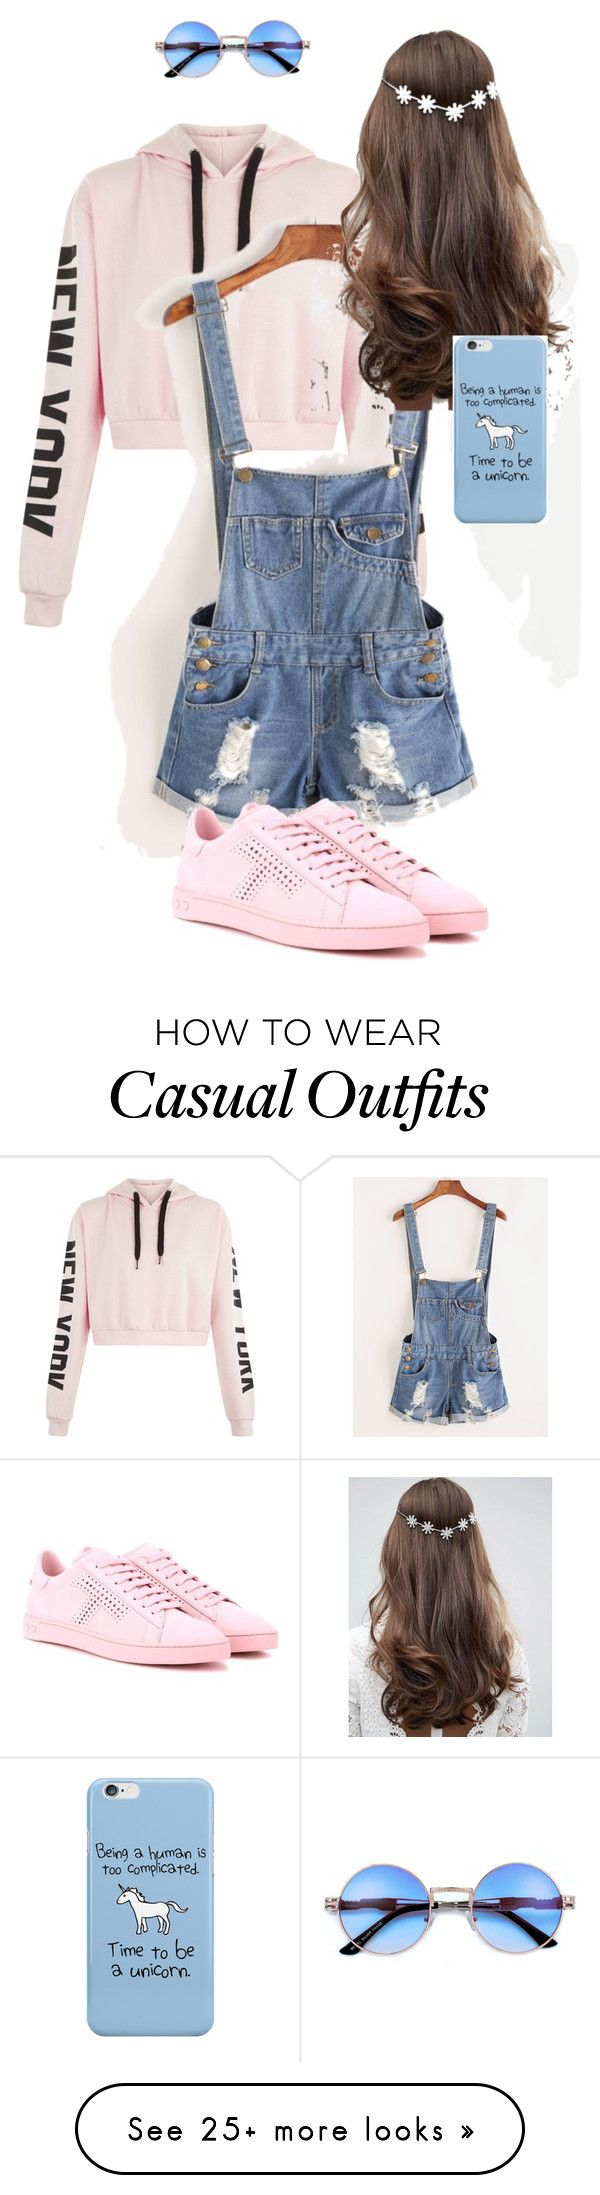 """Casual Tumblr Outfit"" by elisaca on Polyvore featuring Tod's and ASOS"